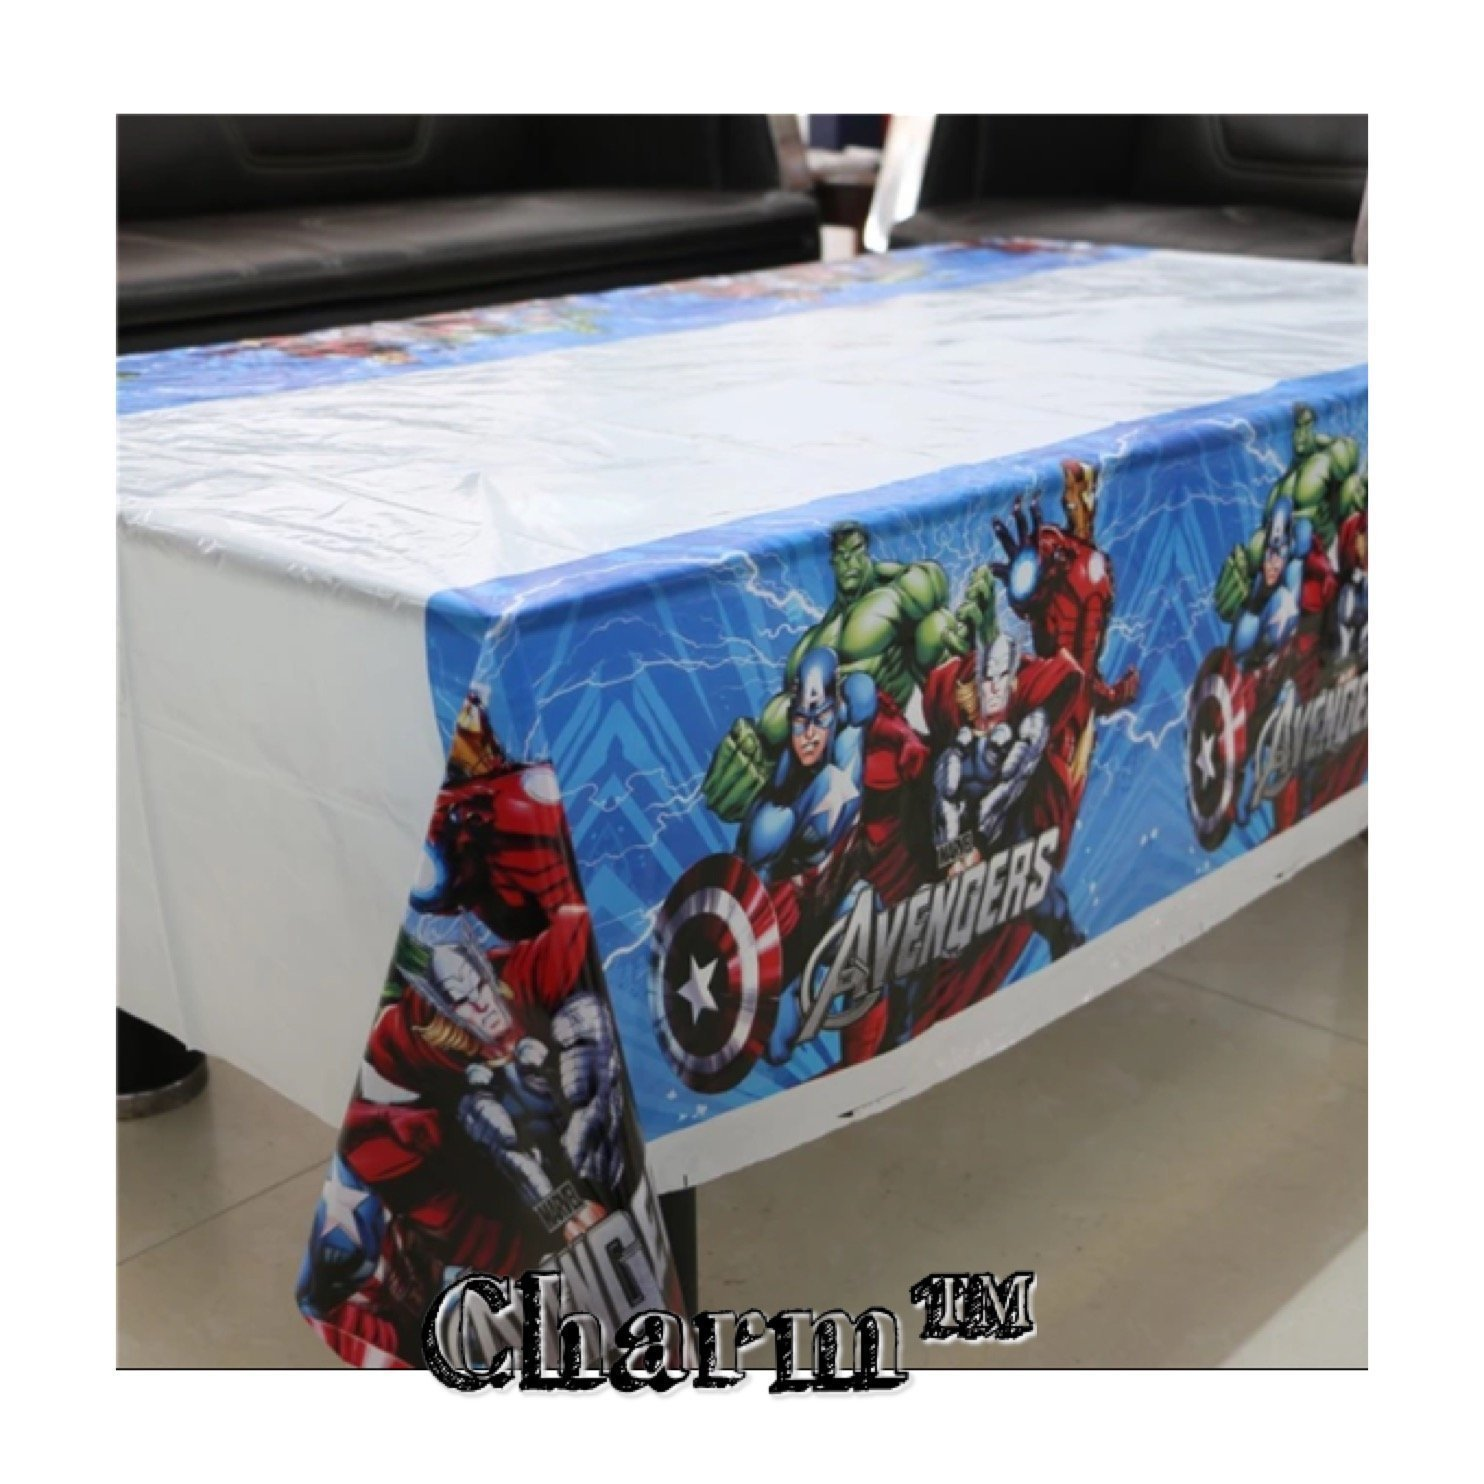 CharmTM Set of 2 Tablecloths AV Party Tablecloths Plastic 42'' X 70'' Party Decorations and Supplies by by CharmTM